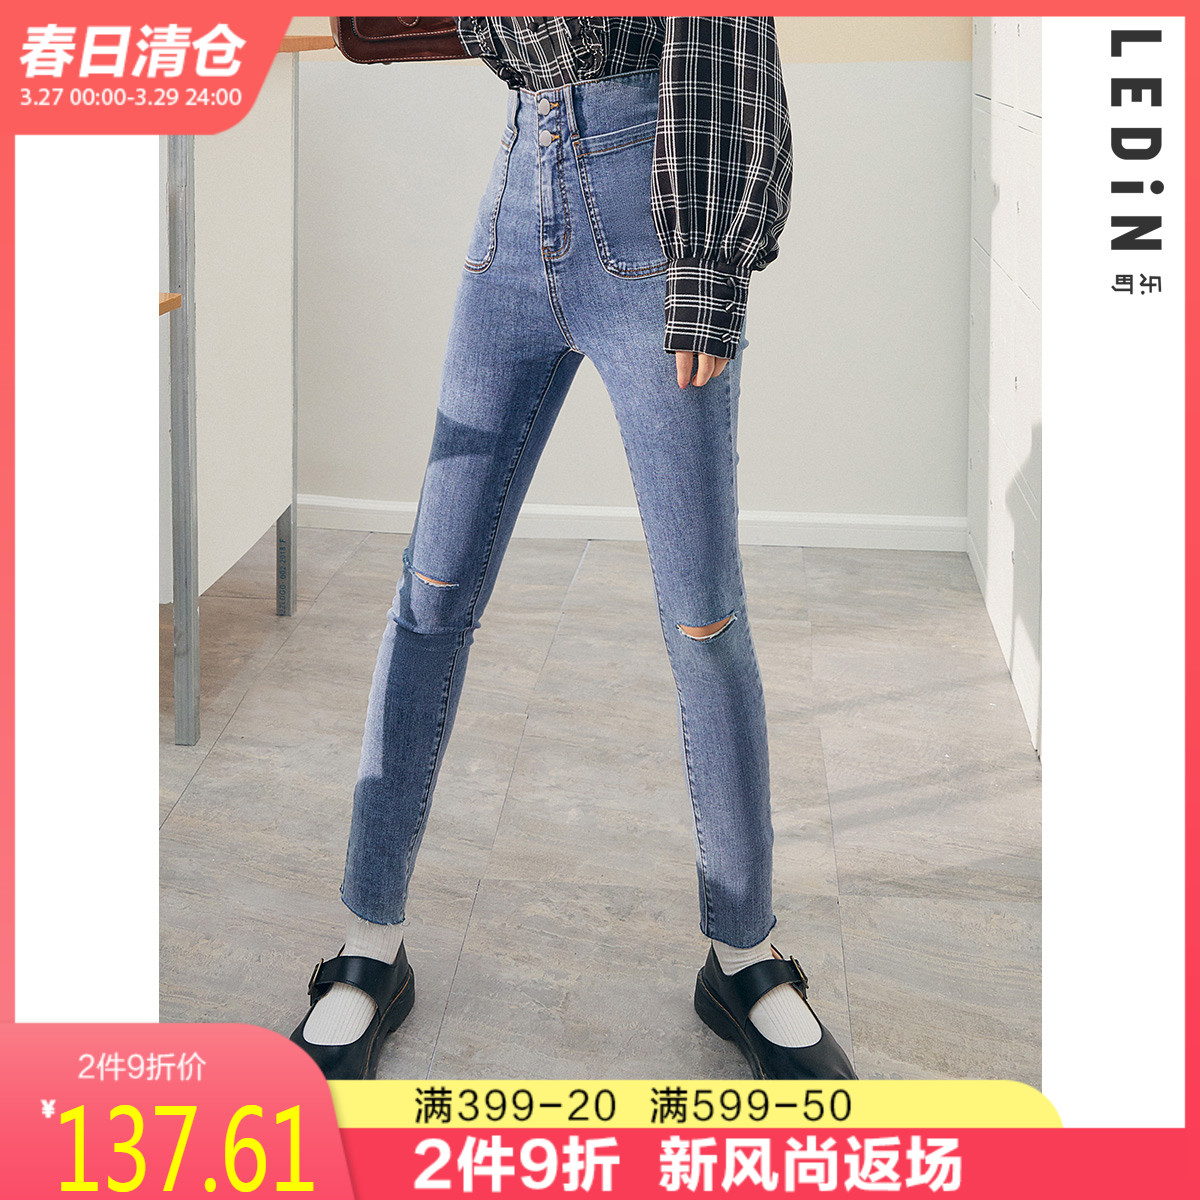 Leding simple high waist jeans 2020 spring new cut hole slim fashion personality nine point pencil pants female trend